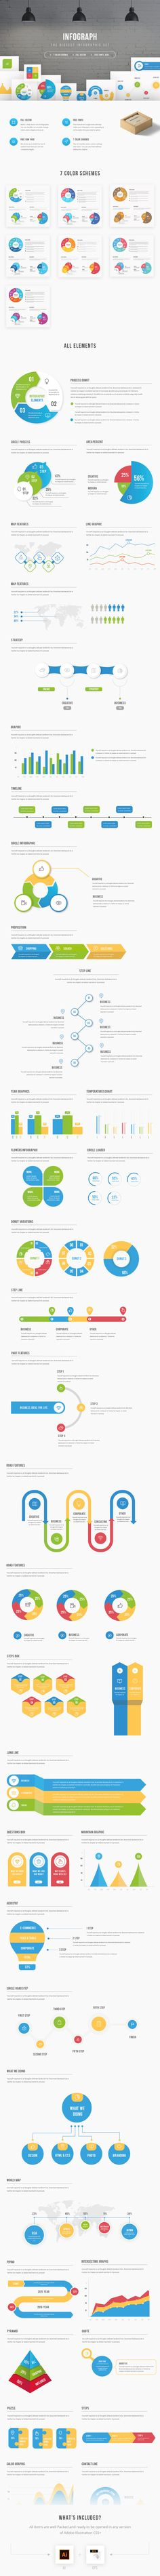 #infographic #infographics #elements #vector #presentation #freebie #freebies #graphicriver  http://graphicriver.net/item/infograph-infographic-elements-kit/16352228  This is a unique multipurpose template consist a lot of vector infographic elements: charts, graphics, shapes, timeline, puzzle diagrams etc… Ideal match for presenting visual information on your website or printed materials. For corporate, business, creative, or personal projects.  Set include 7 modern and fresh colour scheme.